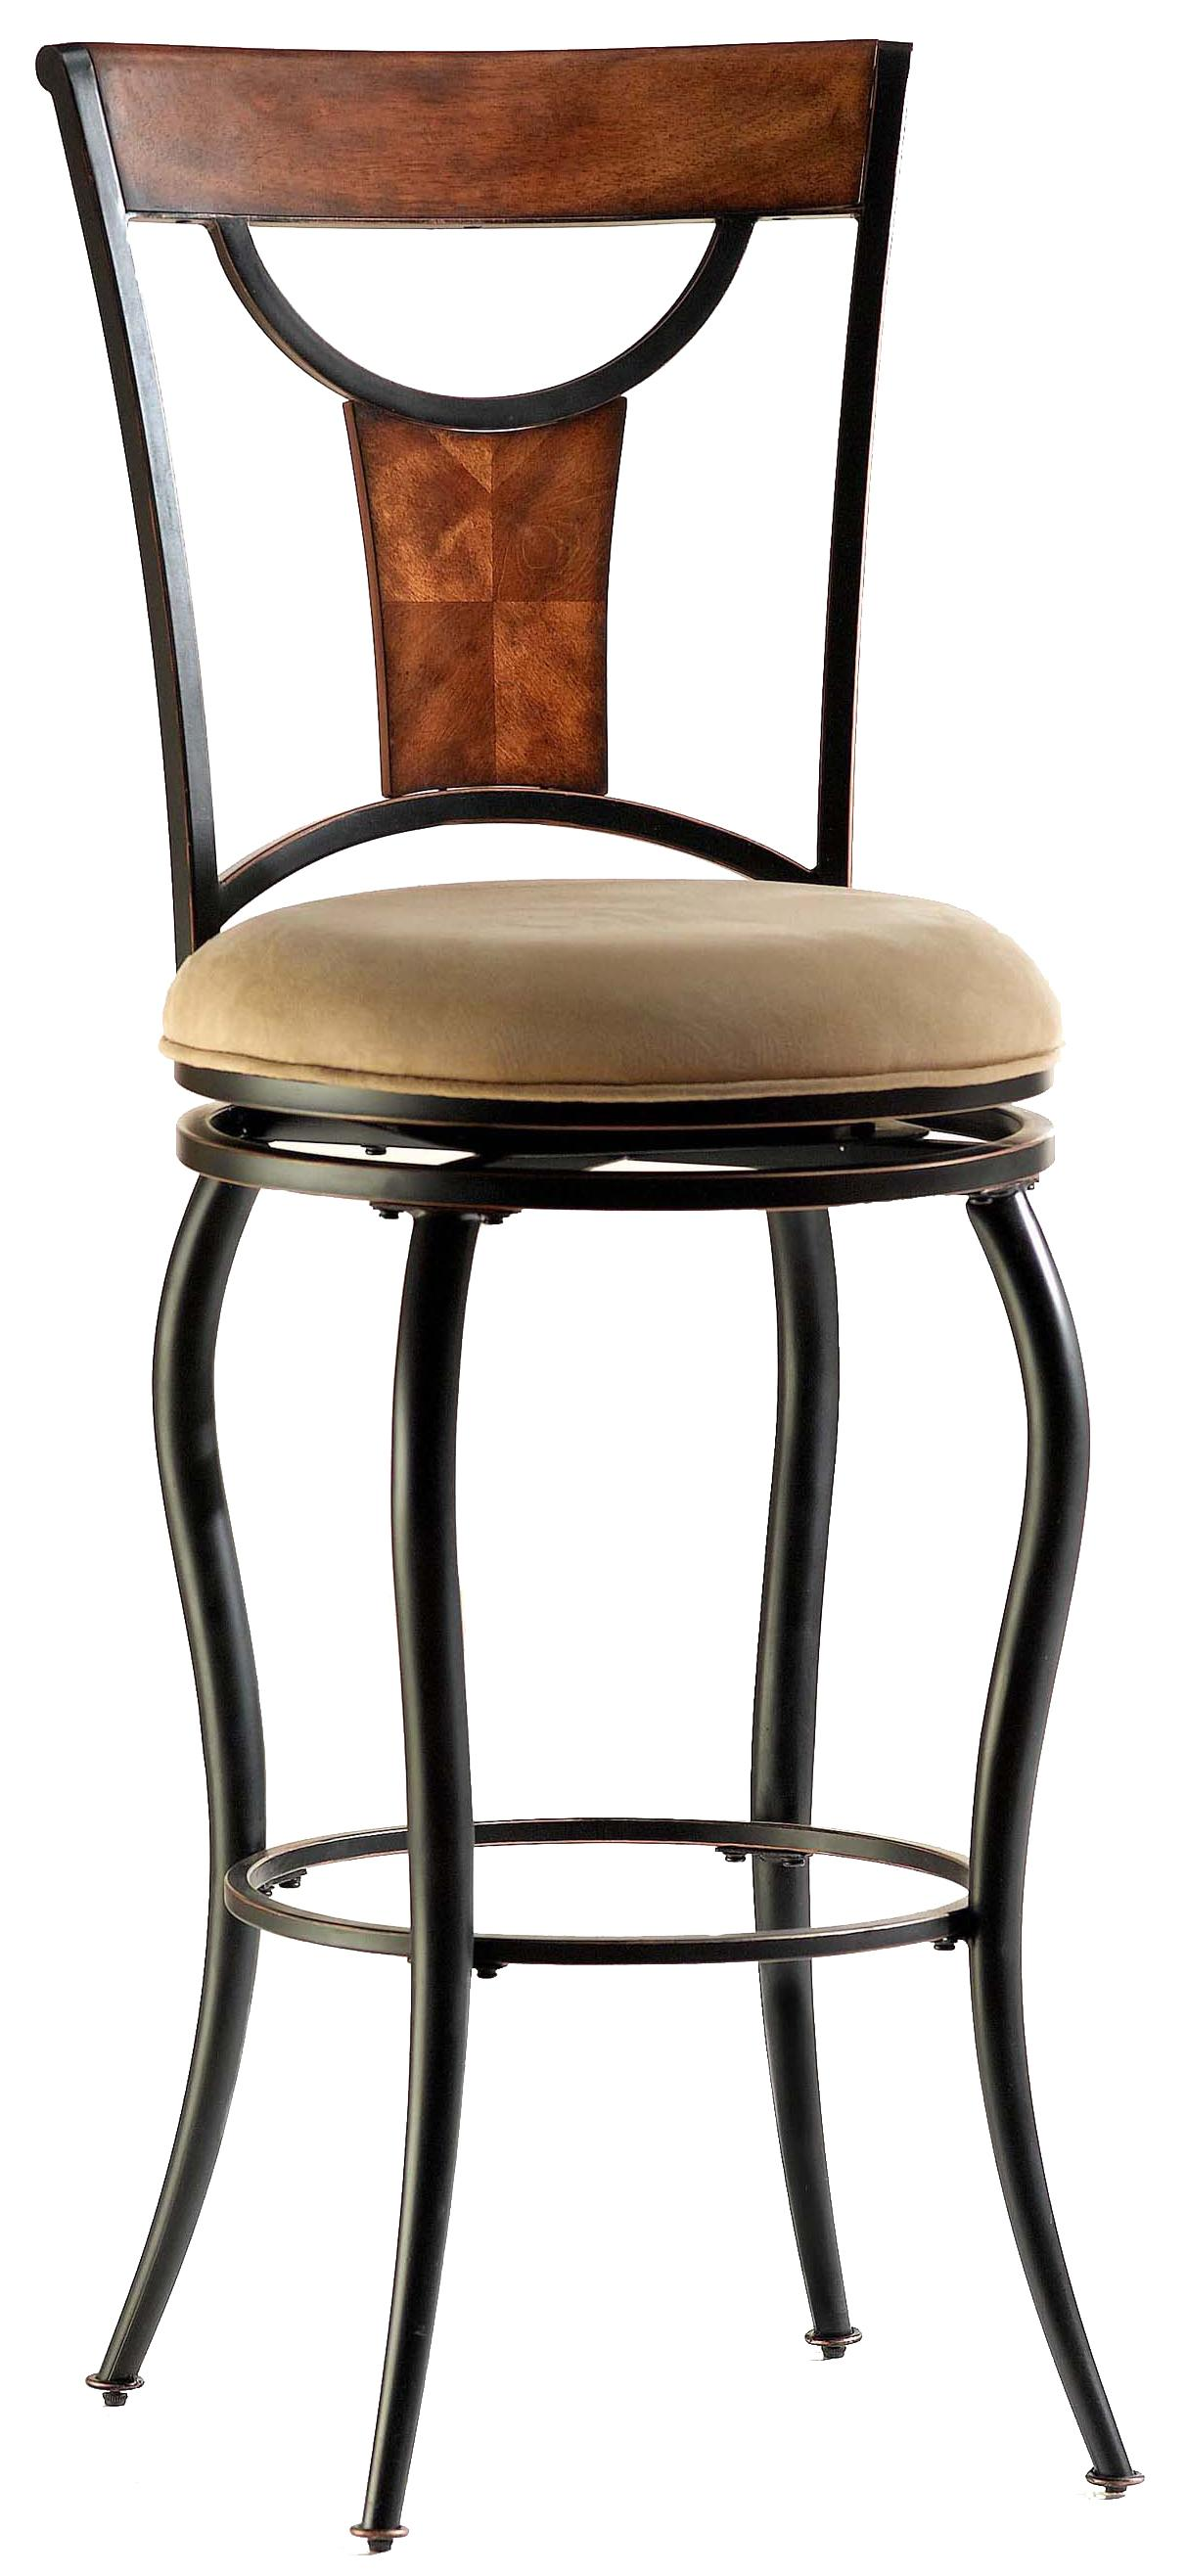 Hillsdale metal stools 26 counter height pacifico stool for Bar stool height